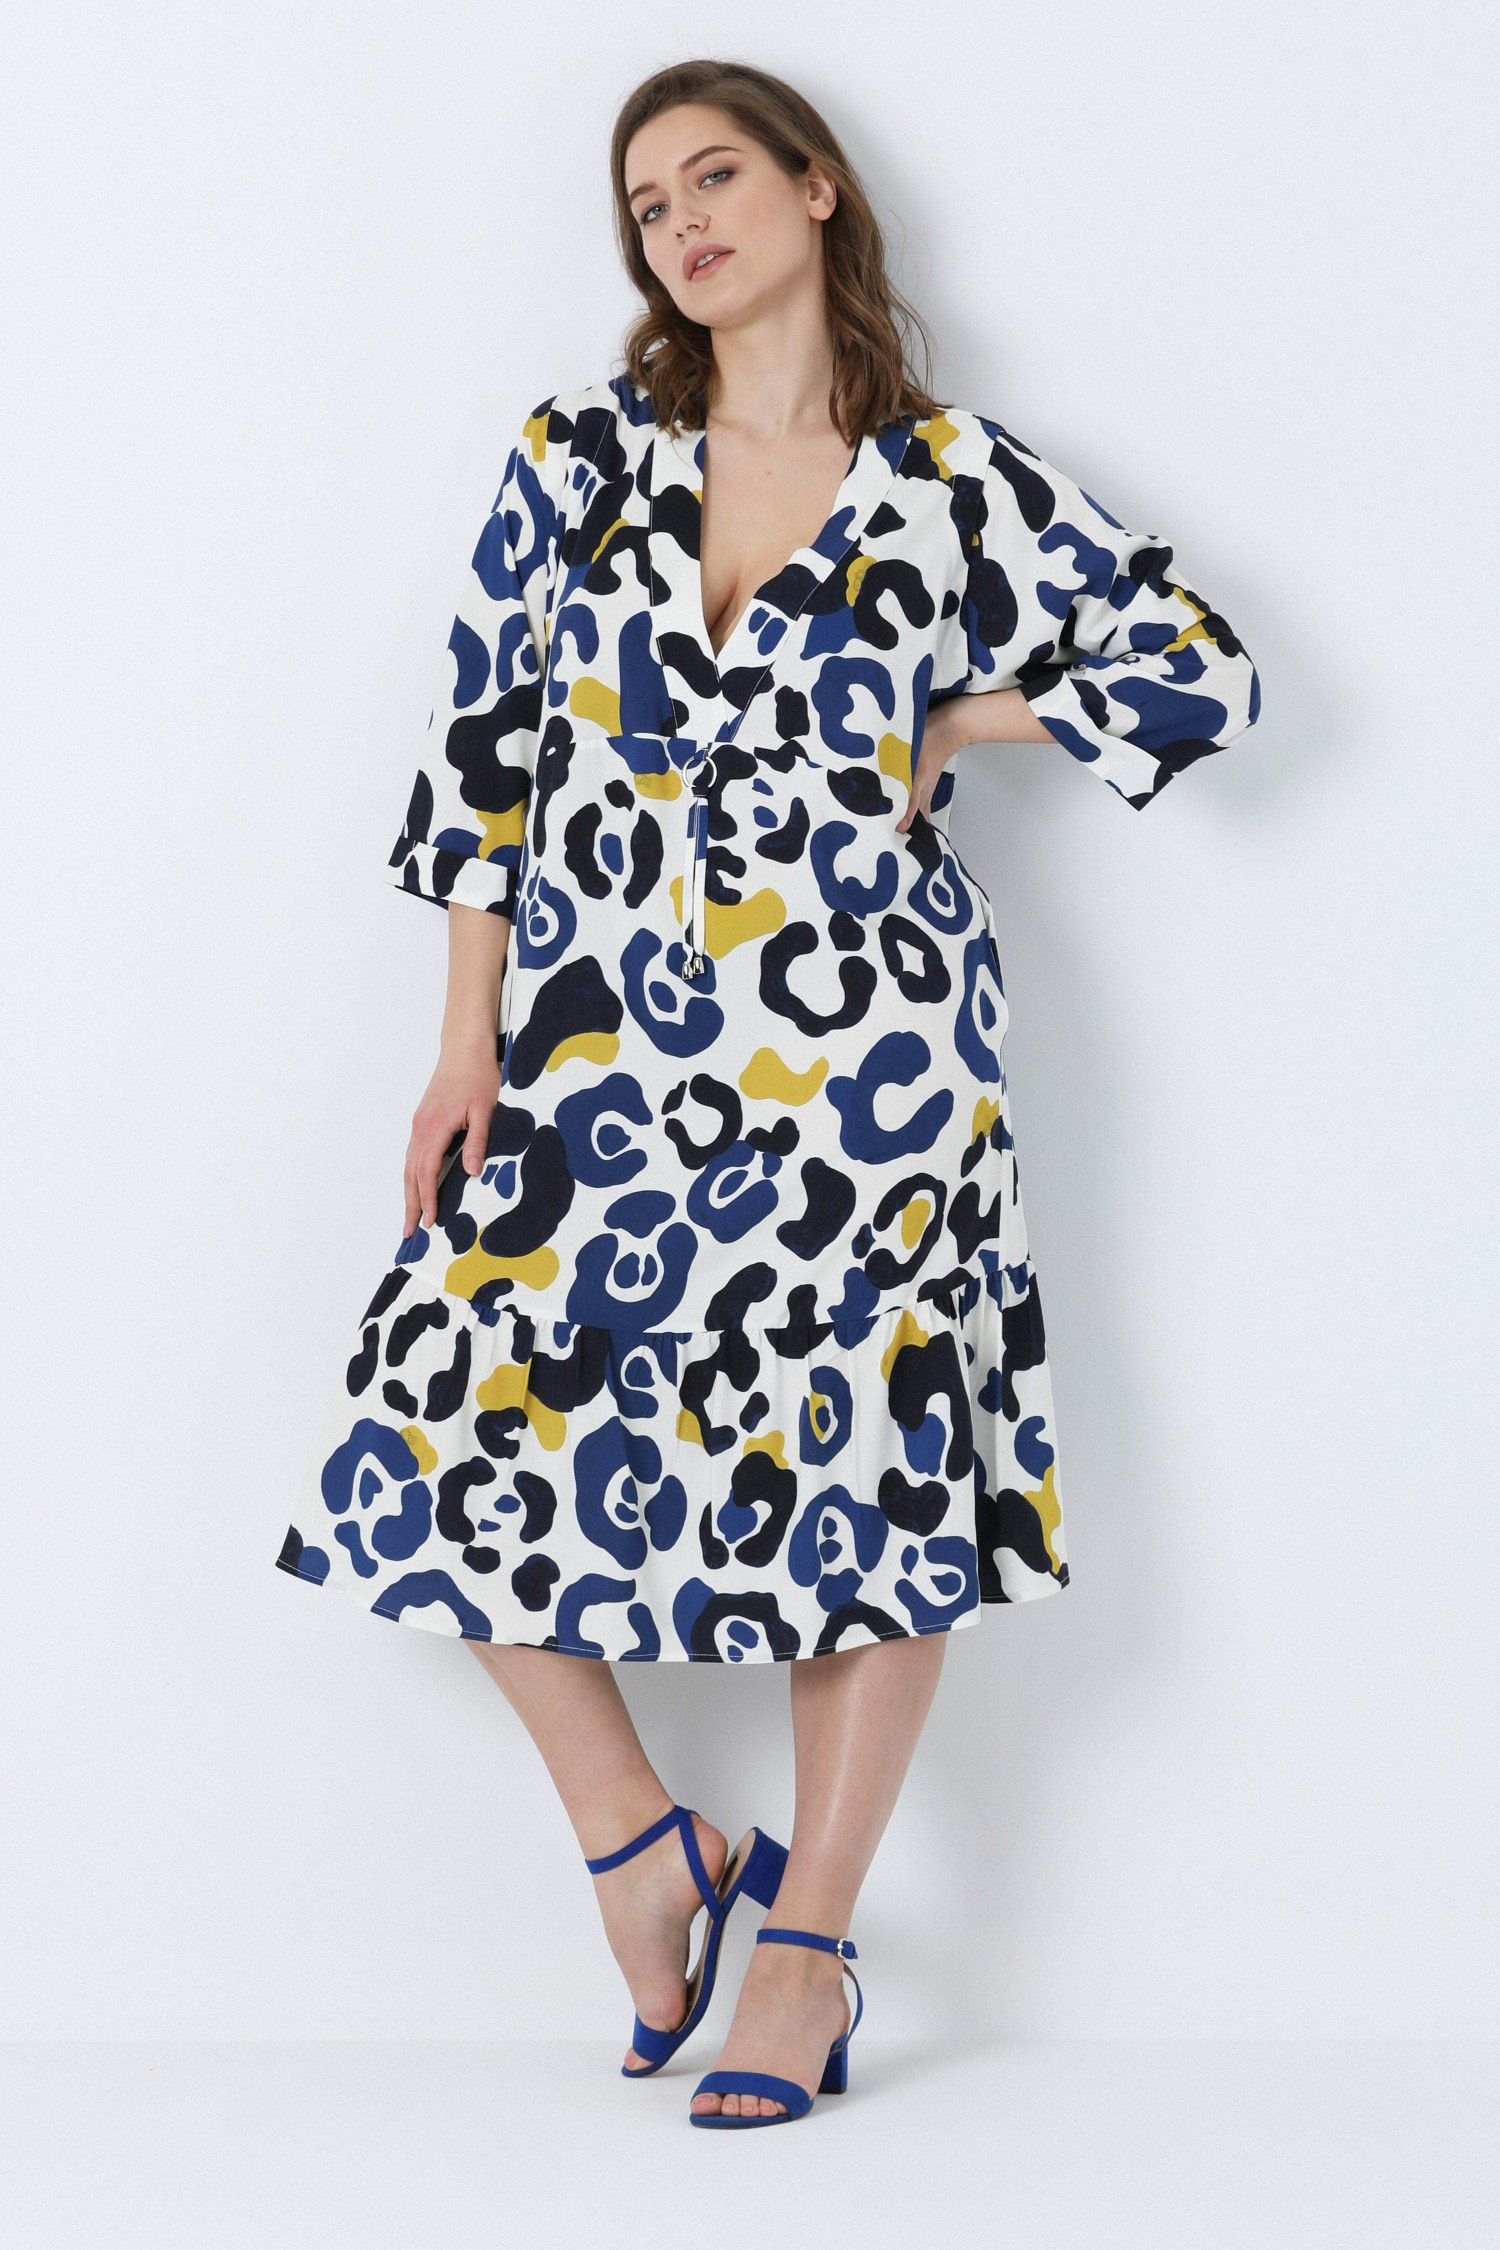 Mid-length dress in printed fibranne (shipping March 15/20).